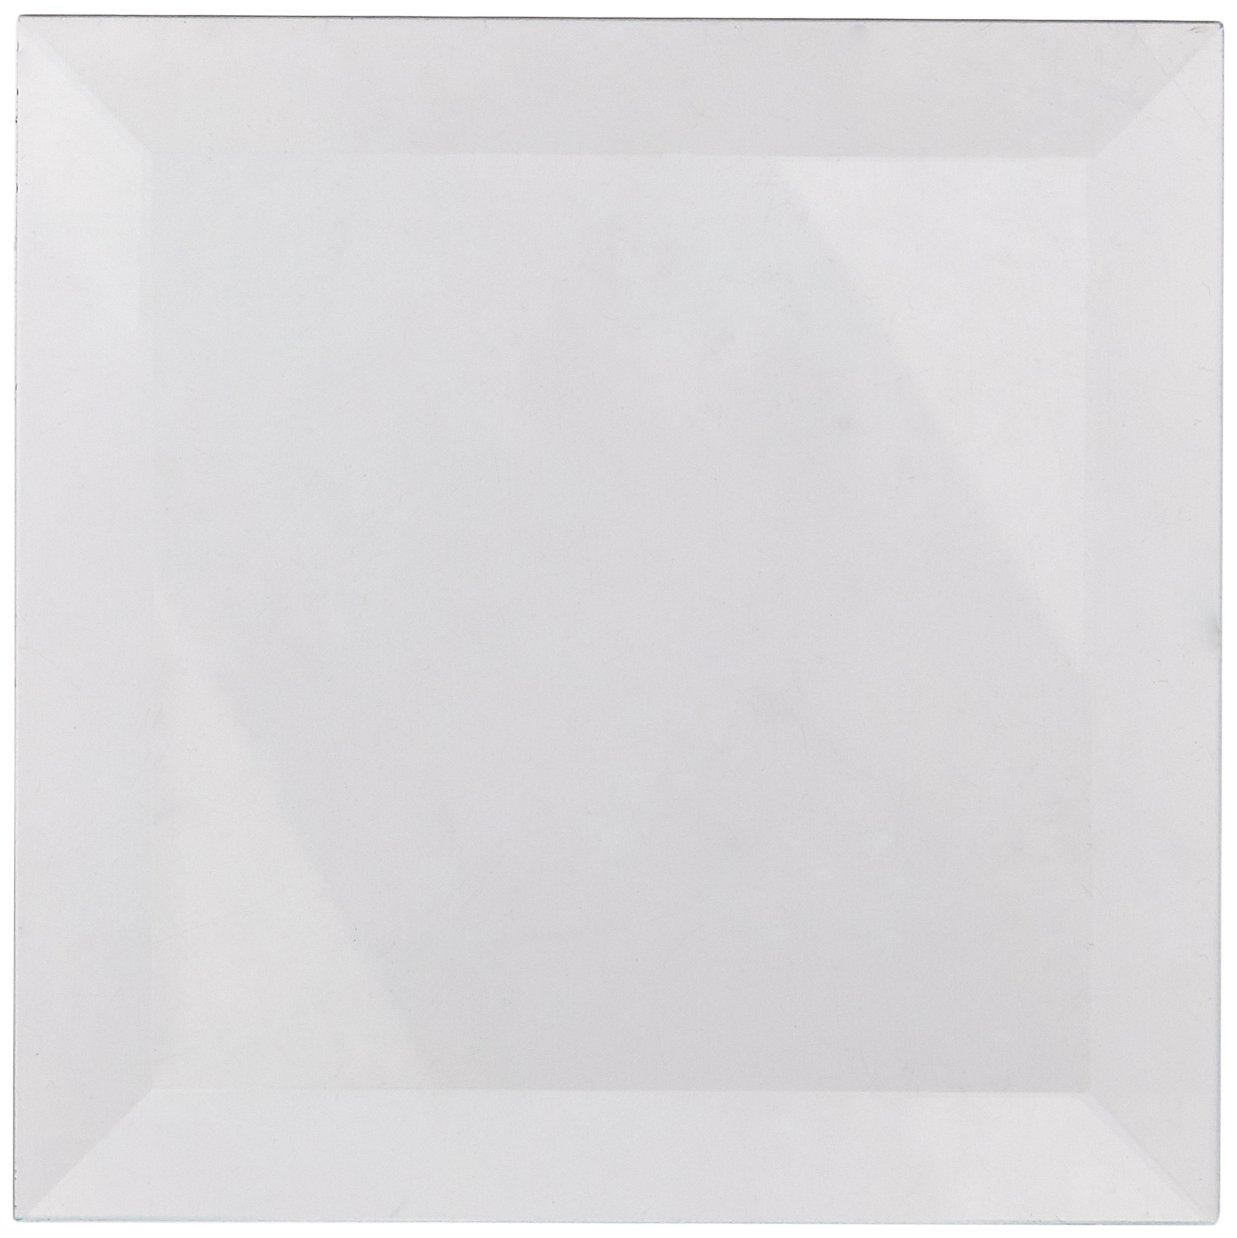 Amazoncom School Specialty Square Glass Bevels X - Clear glass tiles 4x4